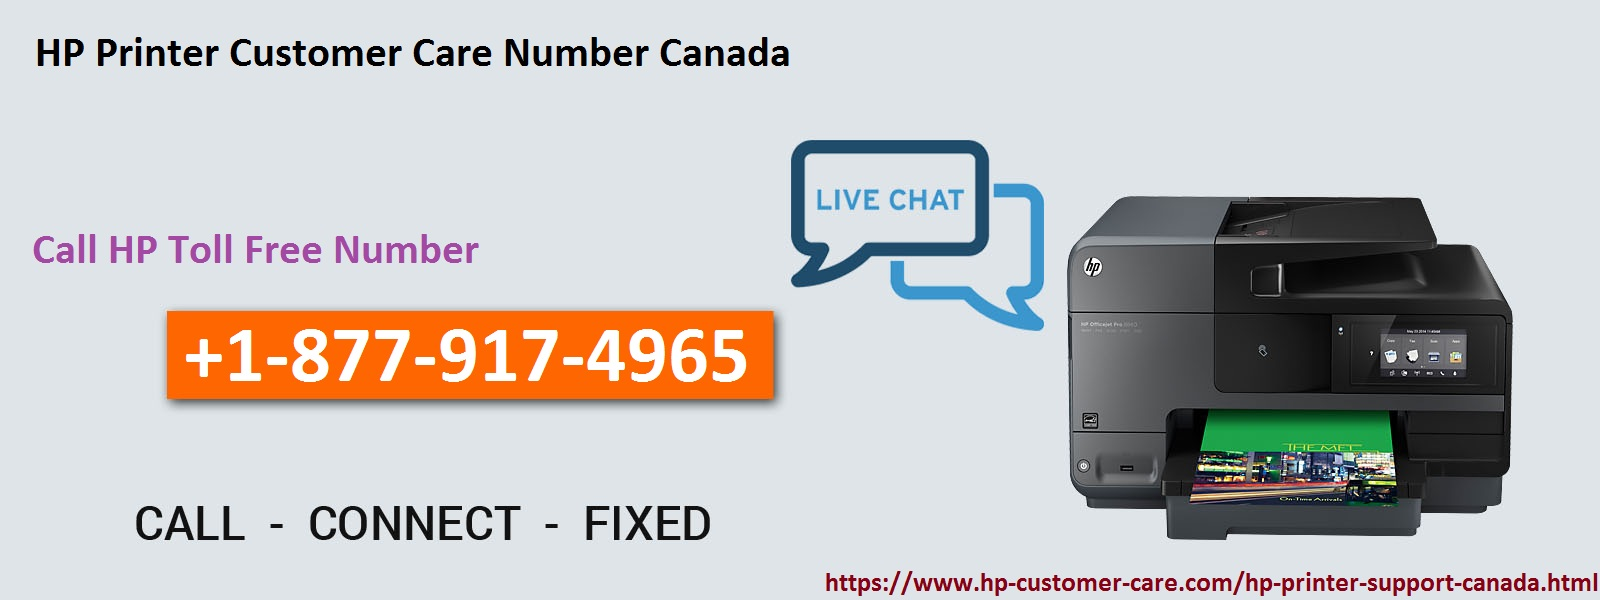 HP Customer Care Number Canada +1-877-917-4965: How to Fix HP